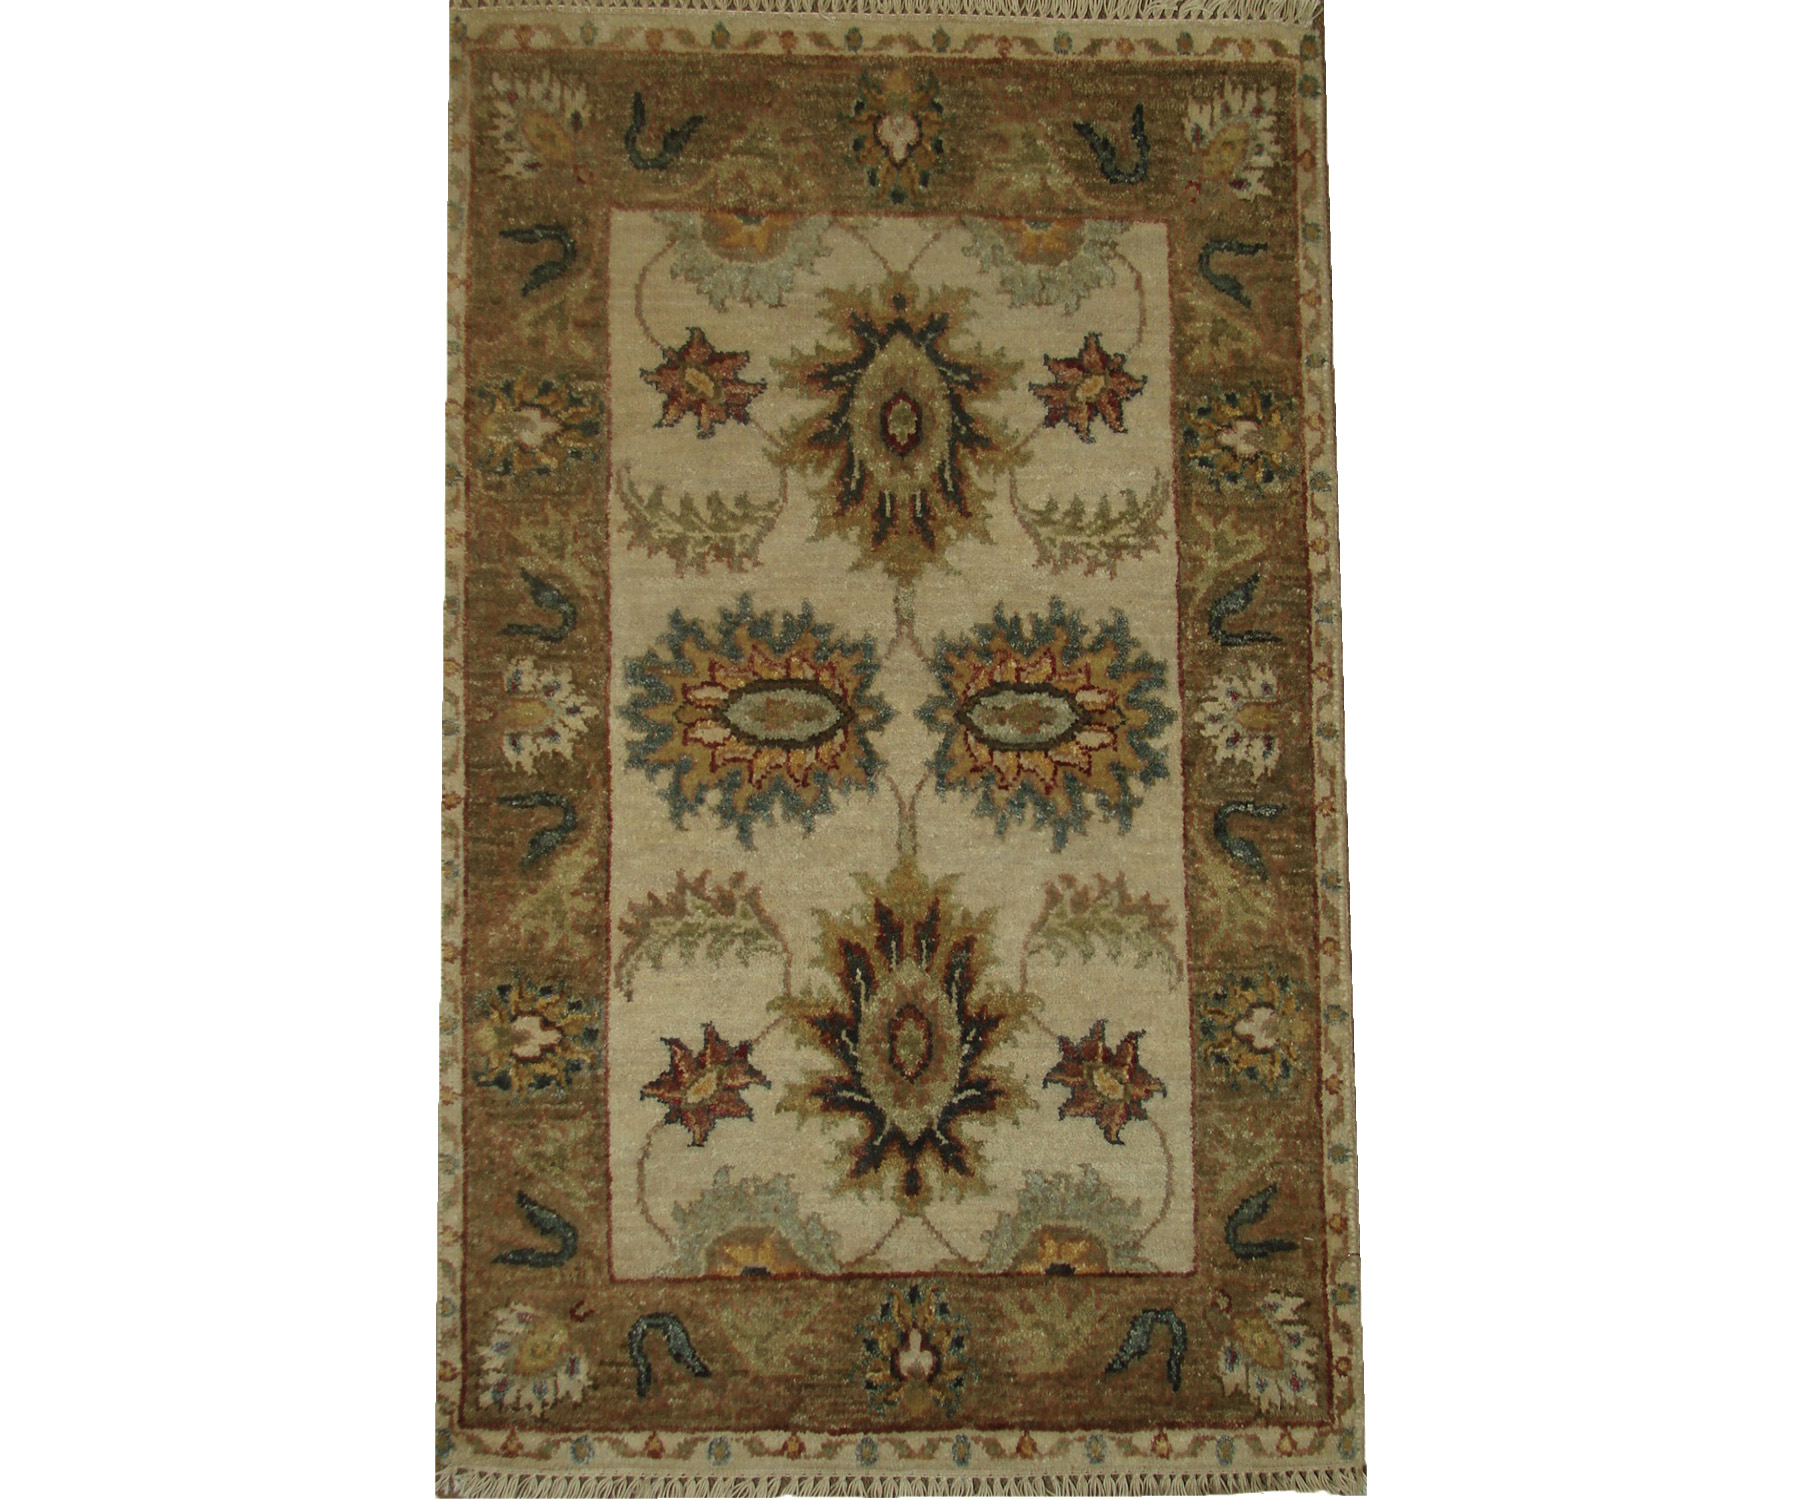 2X3 Traditional Hand Knotted Wool Area Rug - MR21138